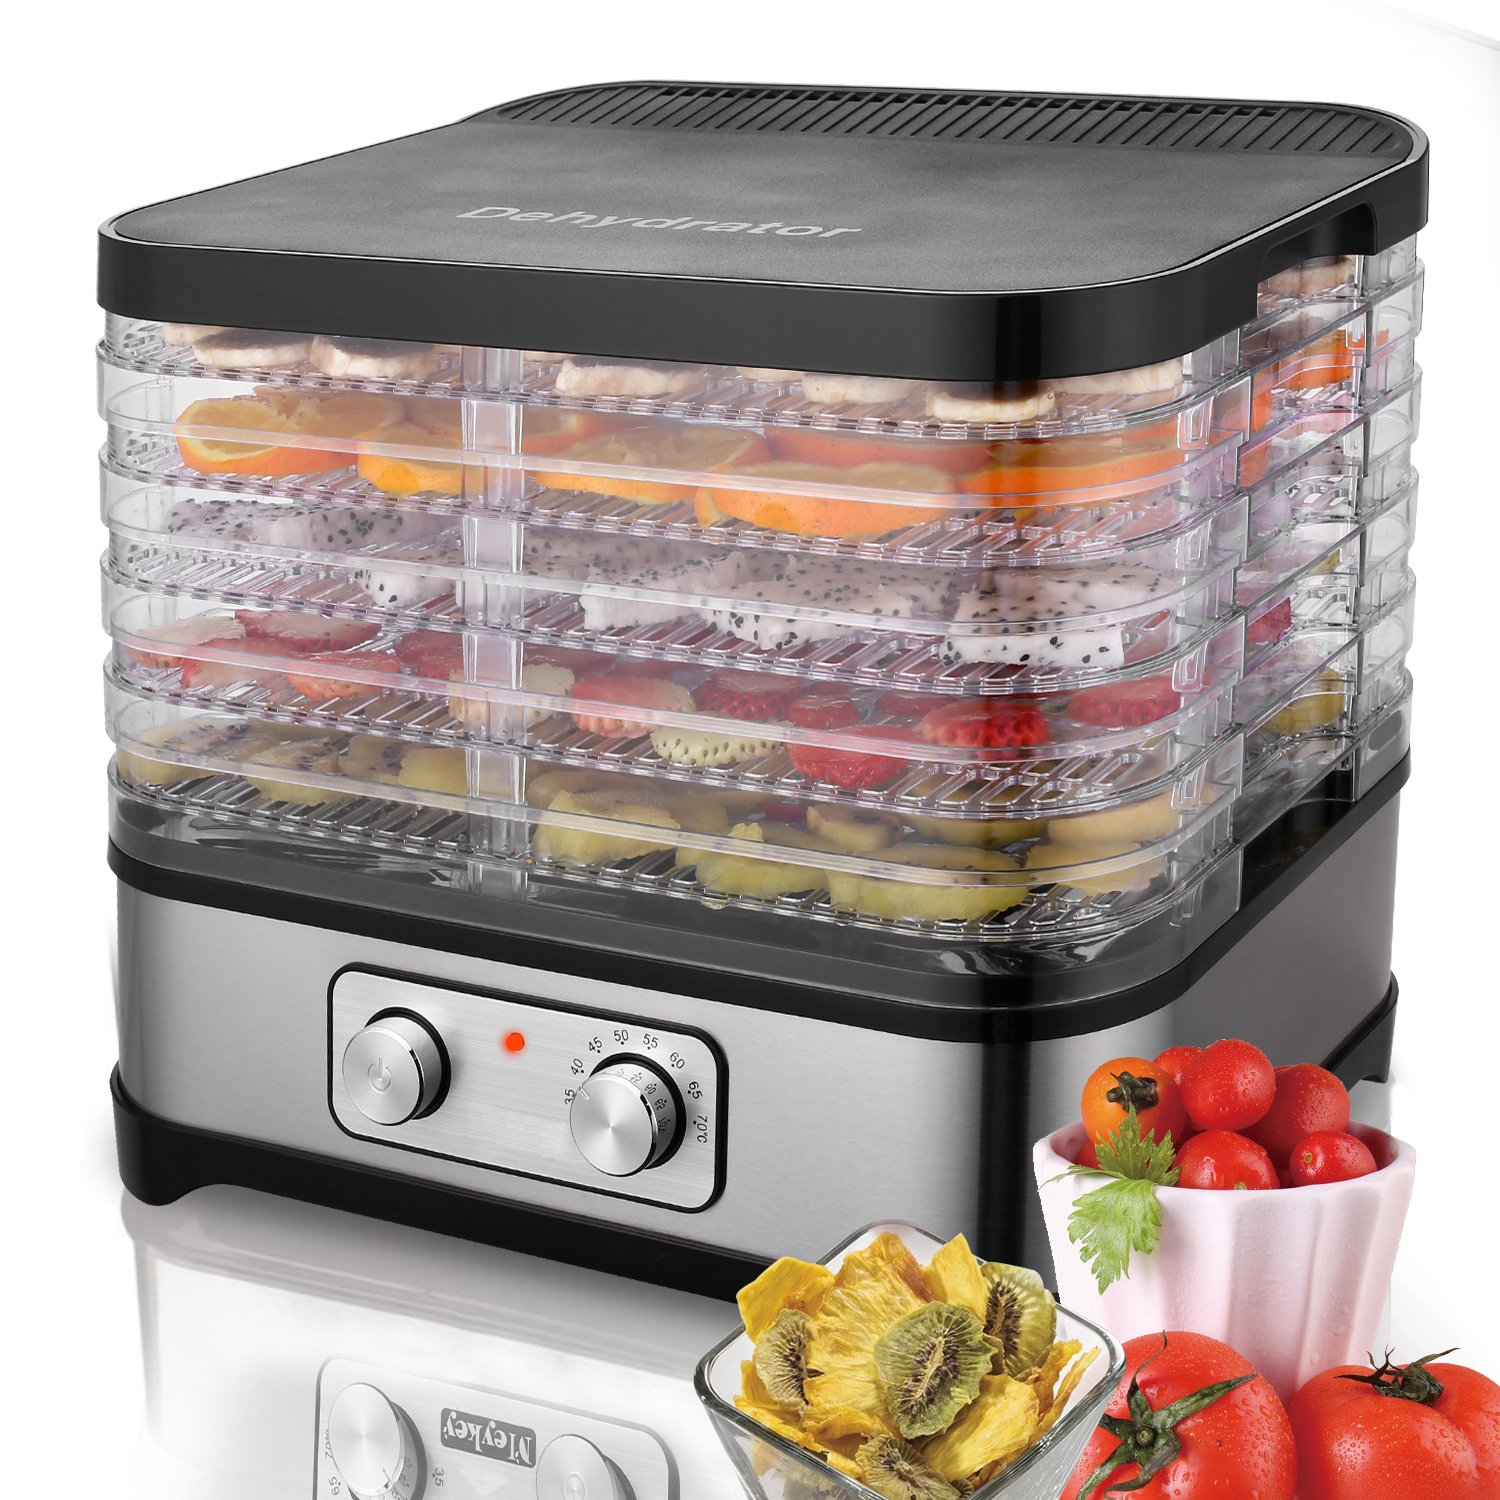 Meykey Food Dehydrator with Temperature Controller 35-70°C, Fruit-Meat Dryer, Digital Dehydrator, BPA-Free, 250W / Button